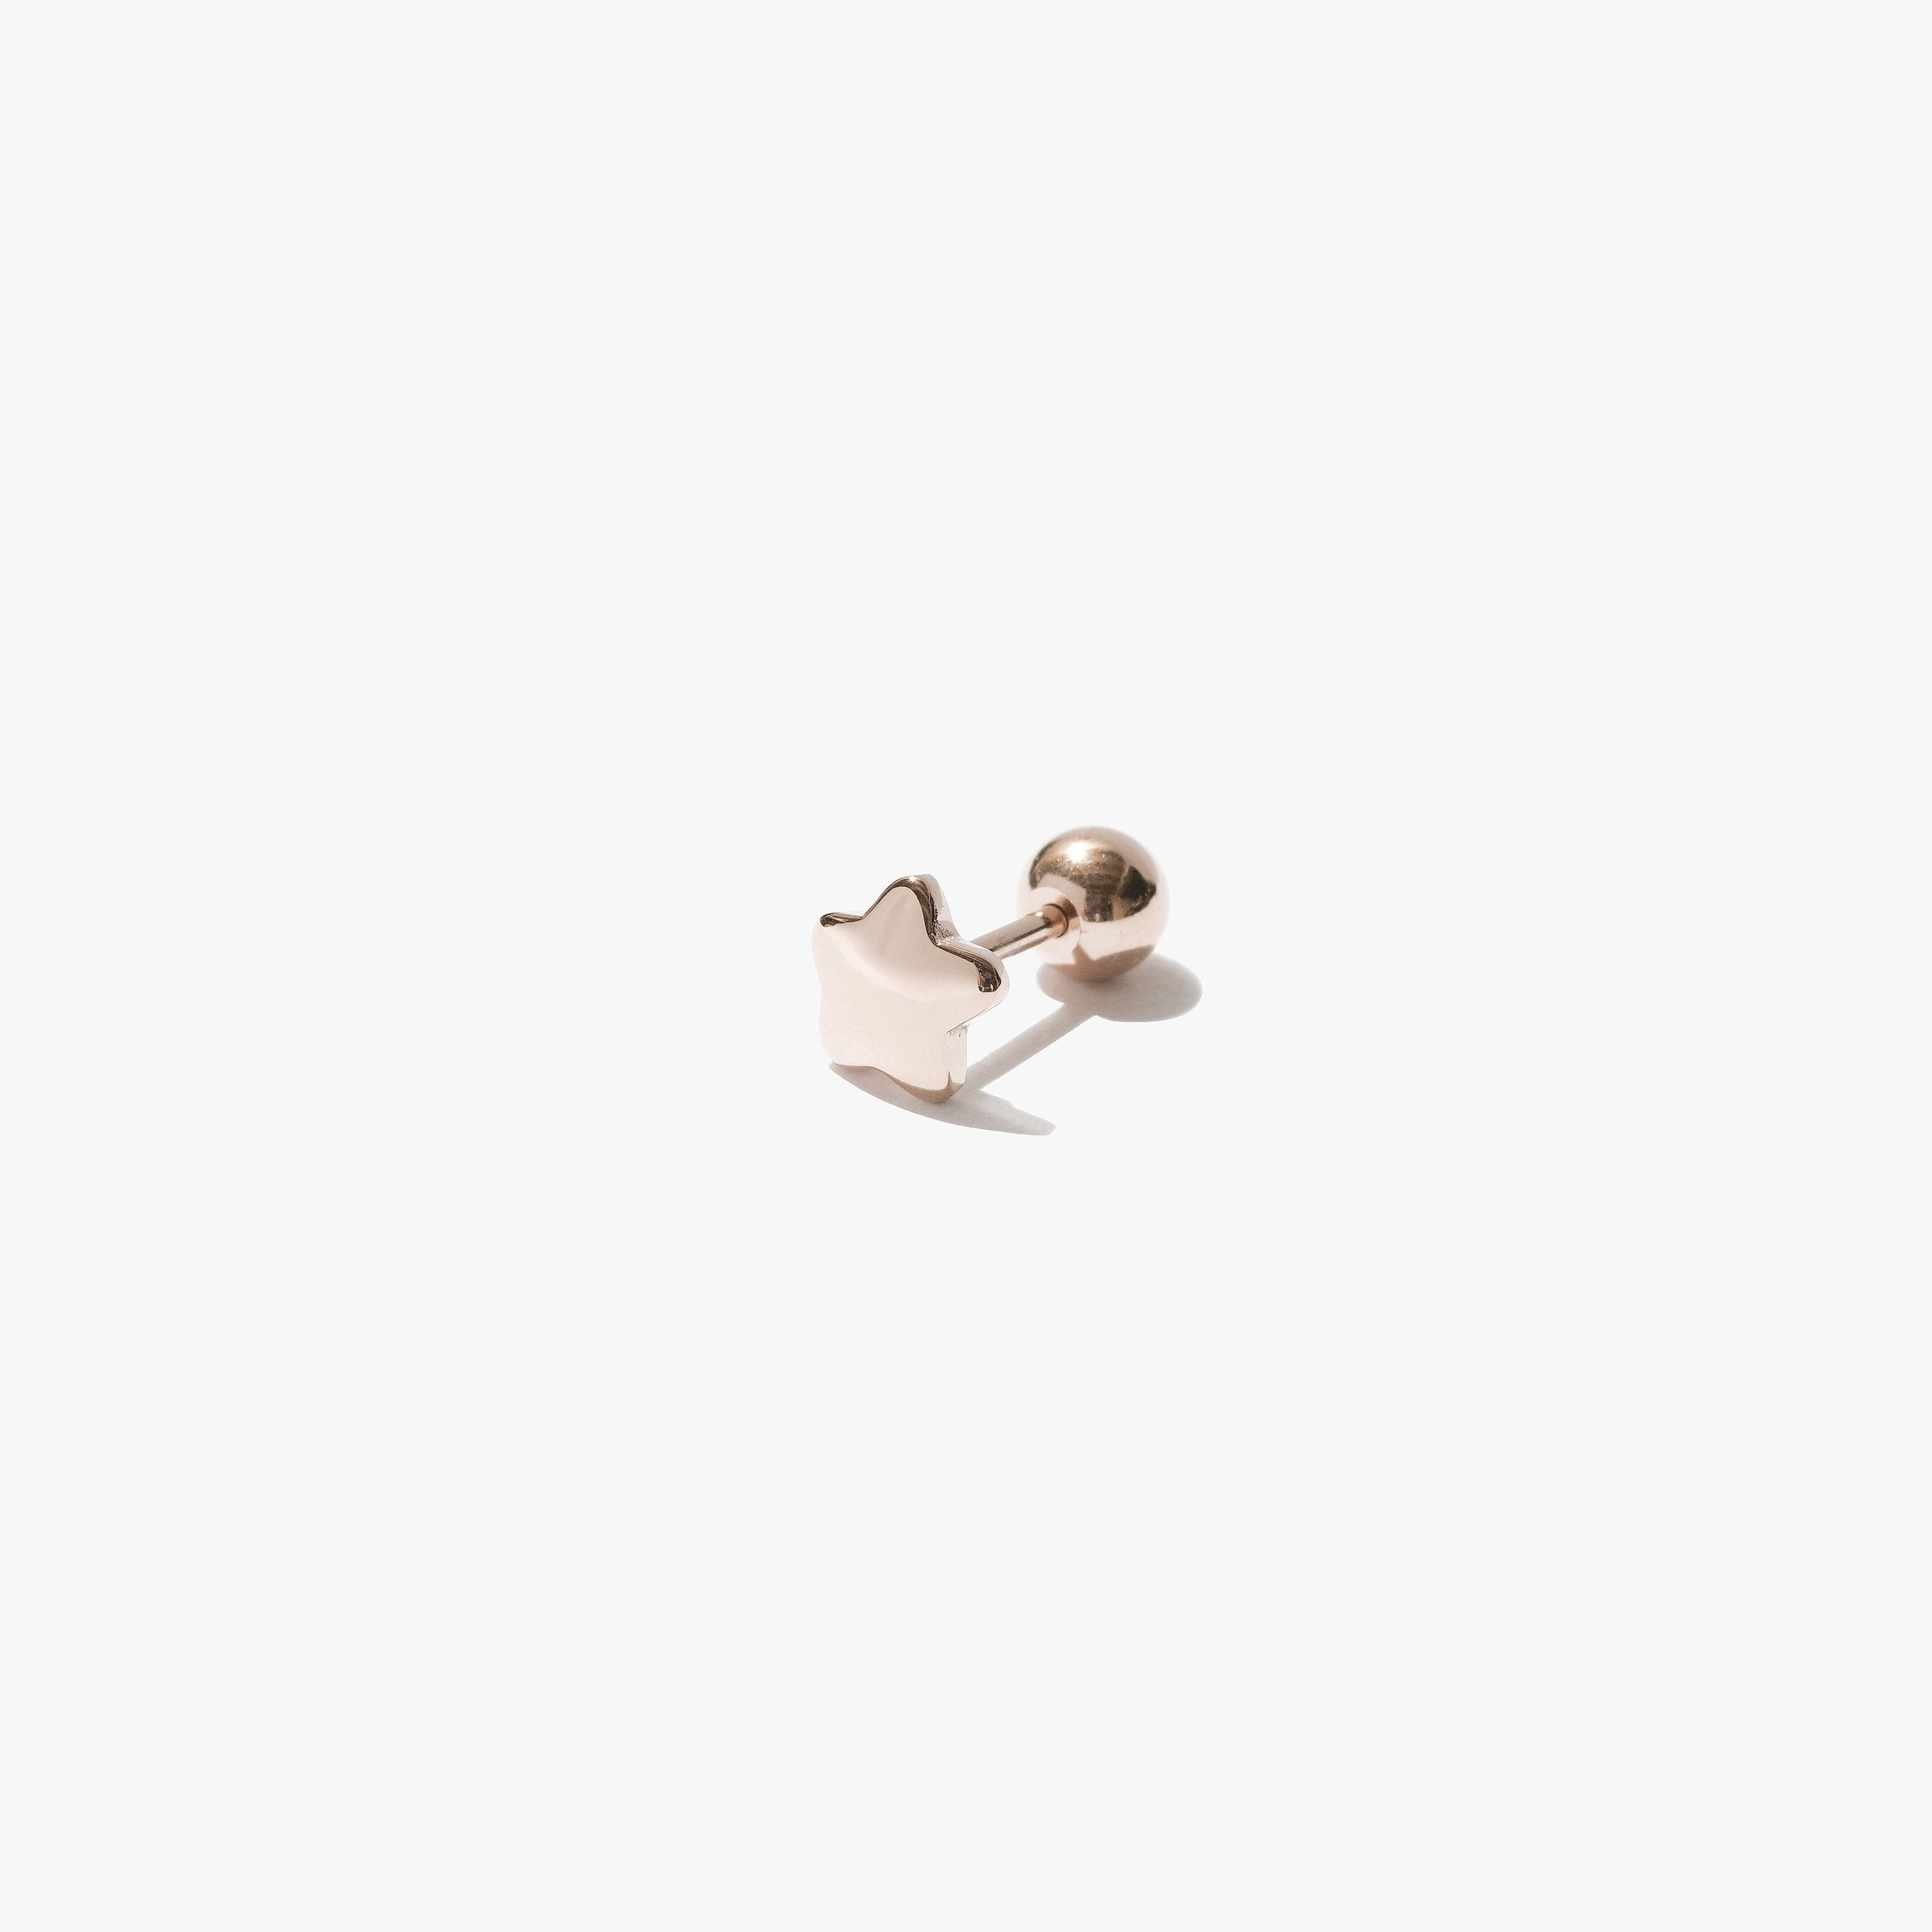 Earrings - Star Stud (Single) - Rose Gold